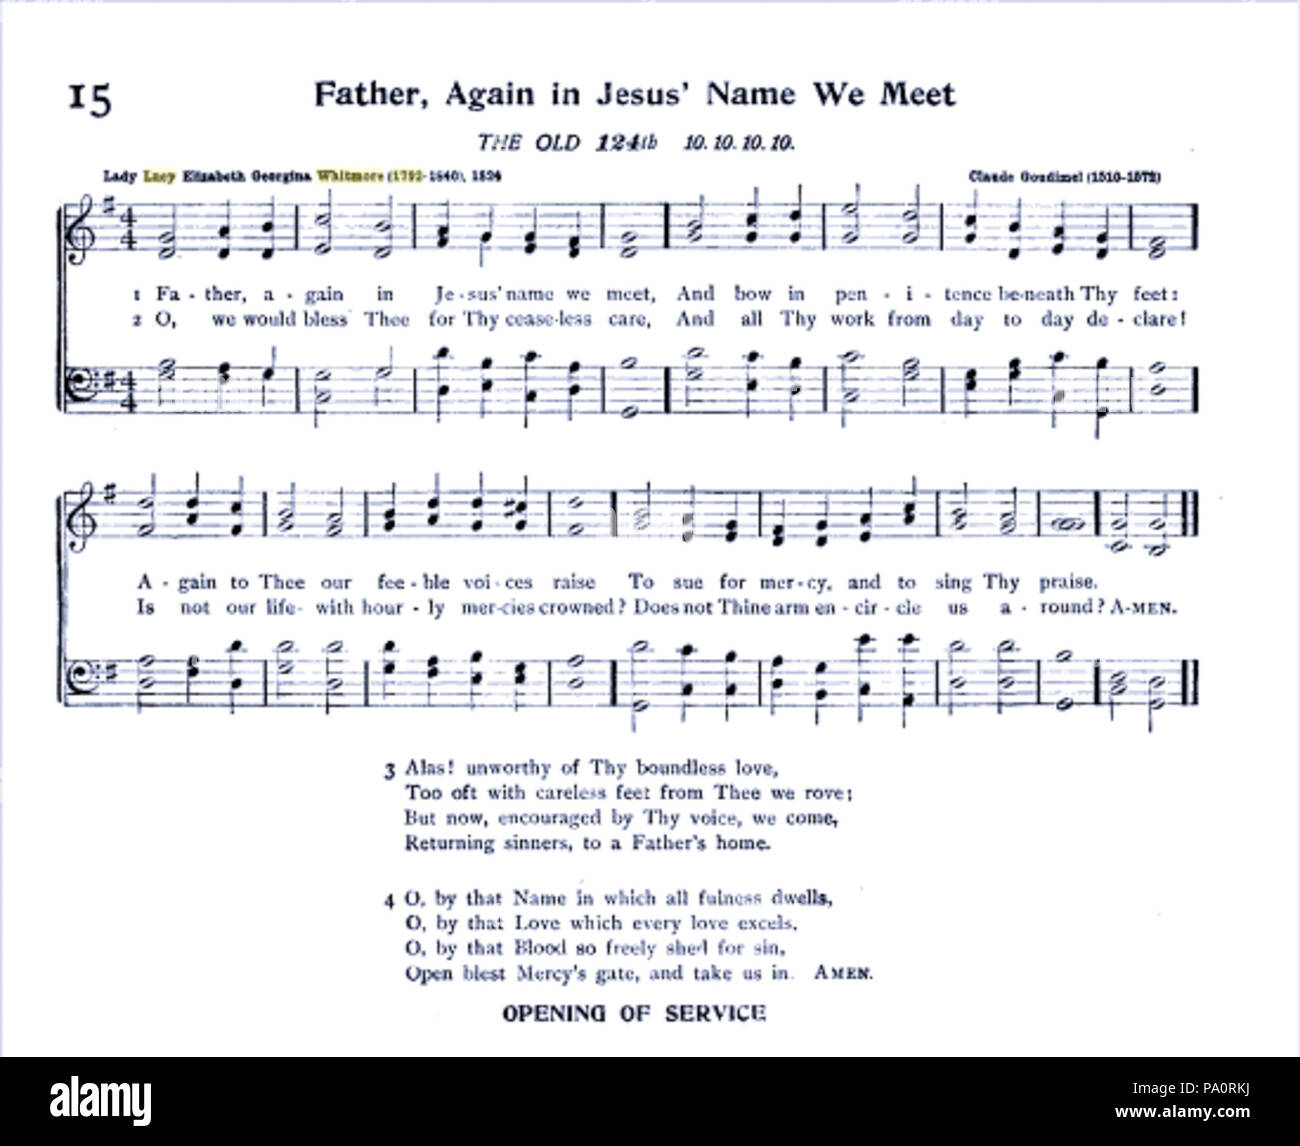 641 Father, again in Jesus' name we meet (1824 Stock Photo